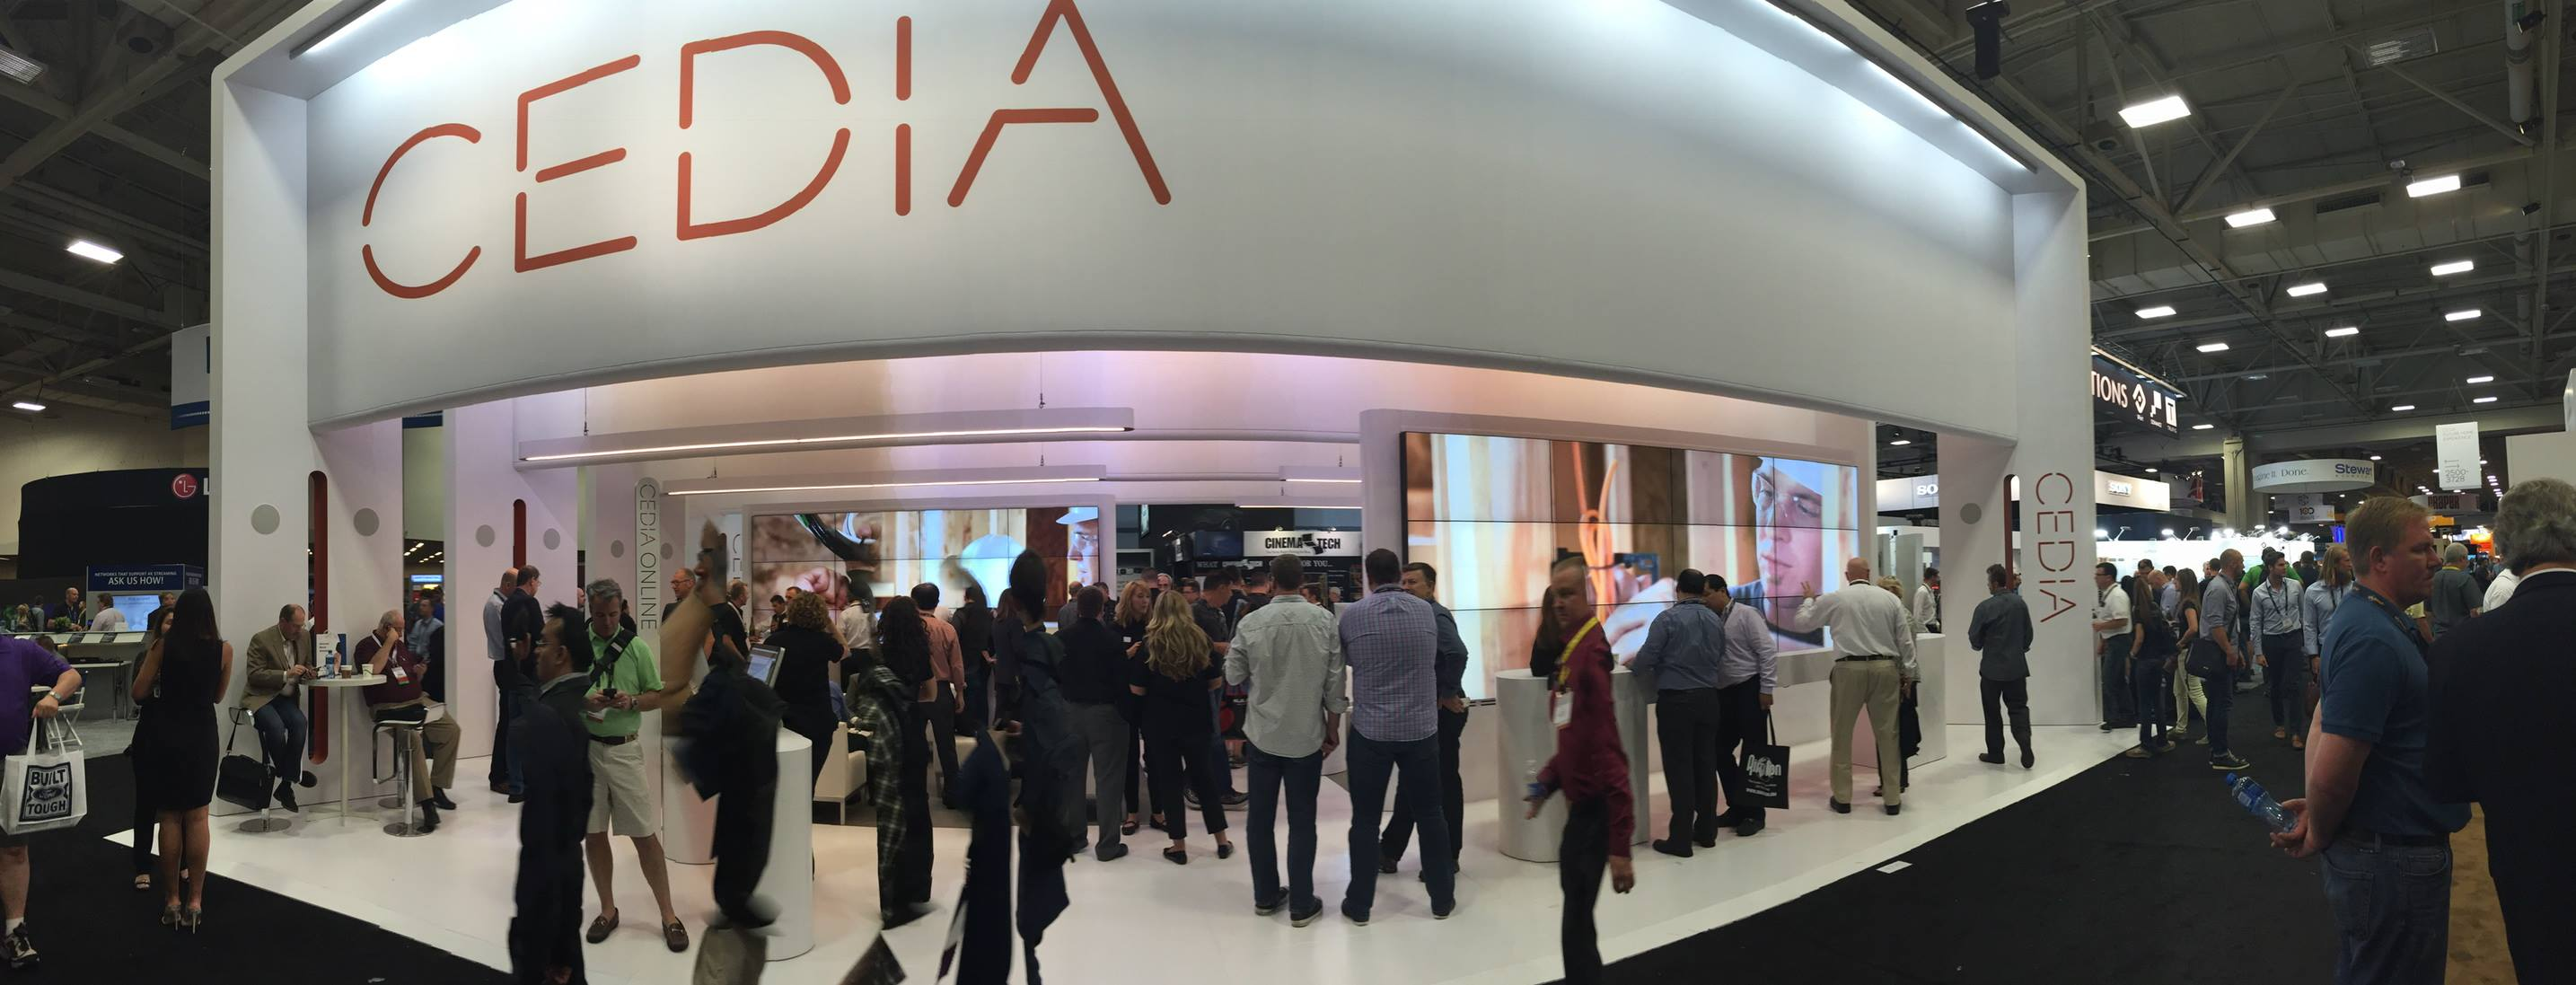 CEDIA 2017 - what's new and cool